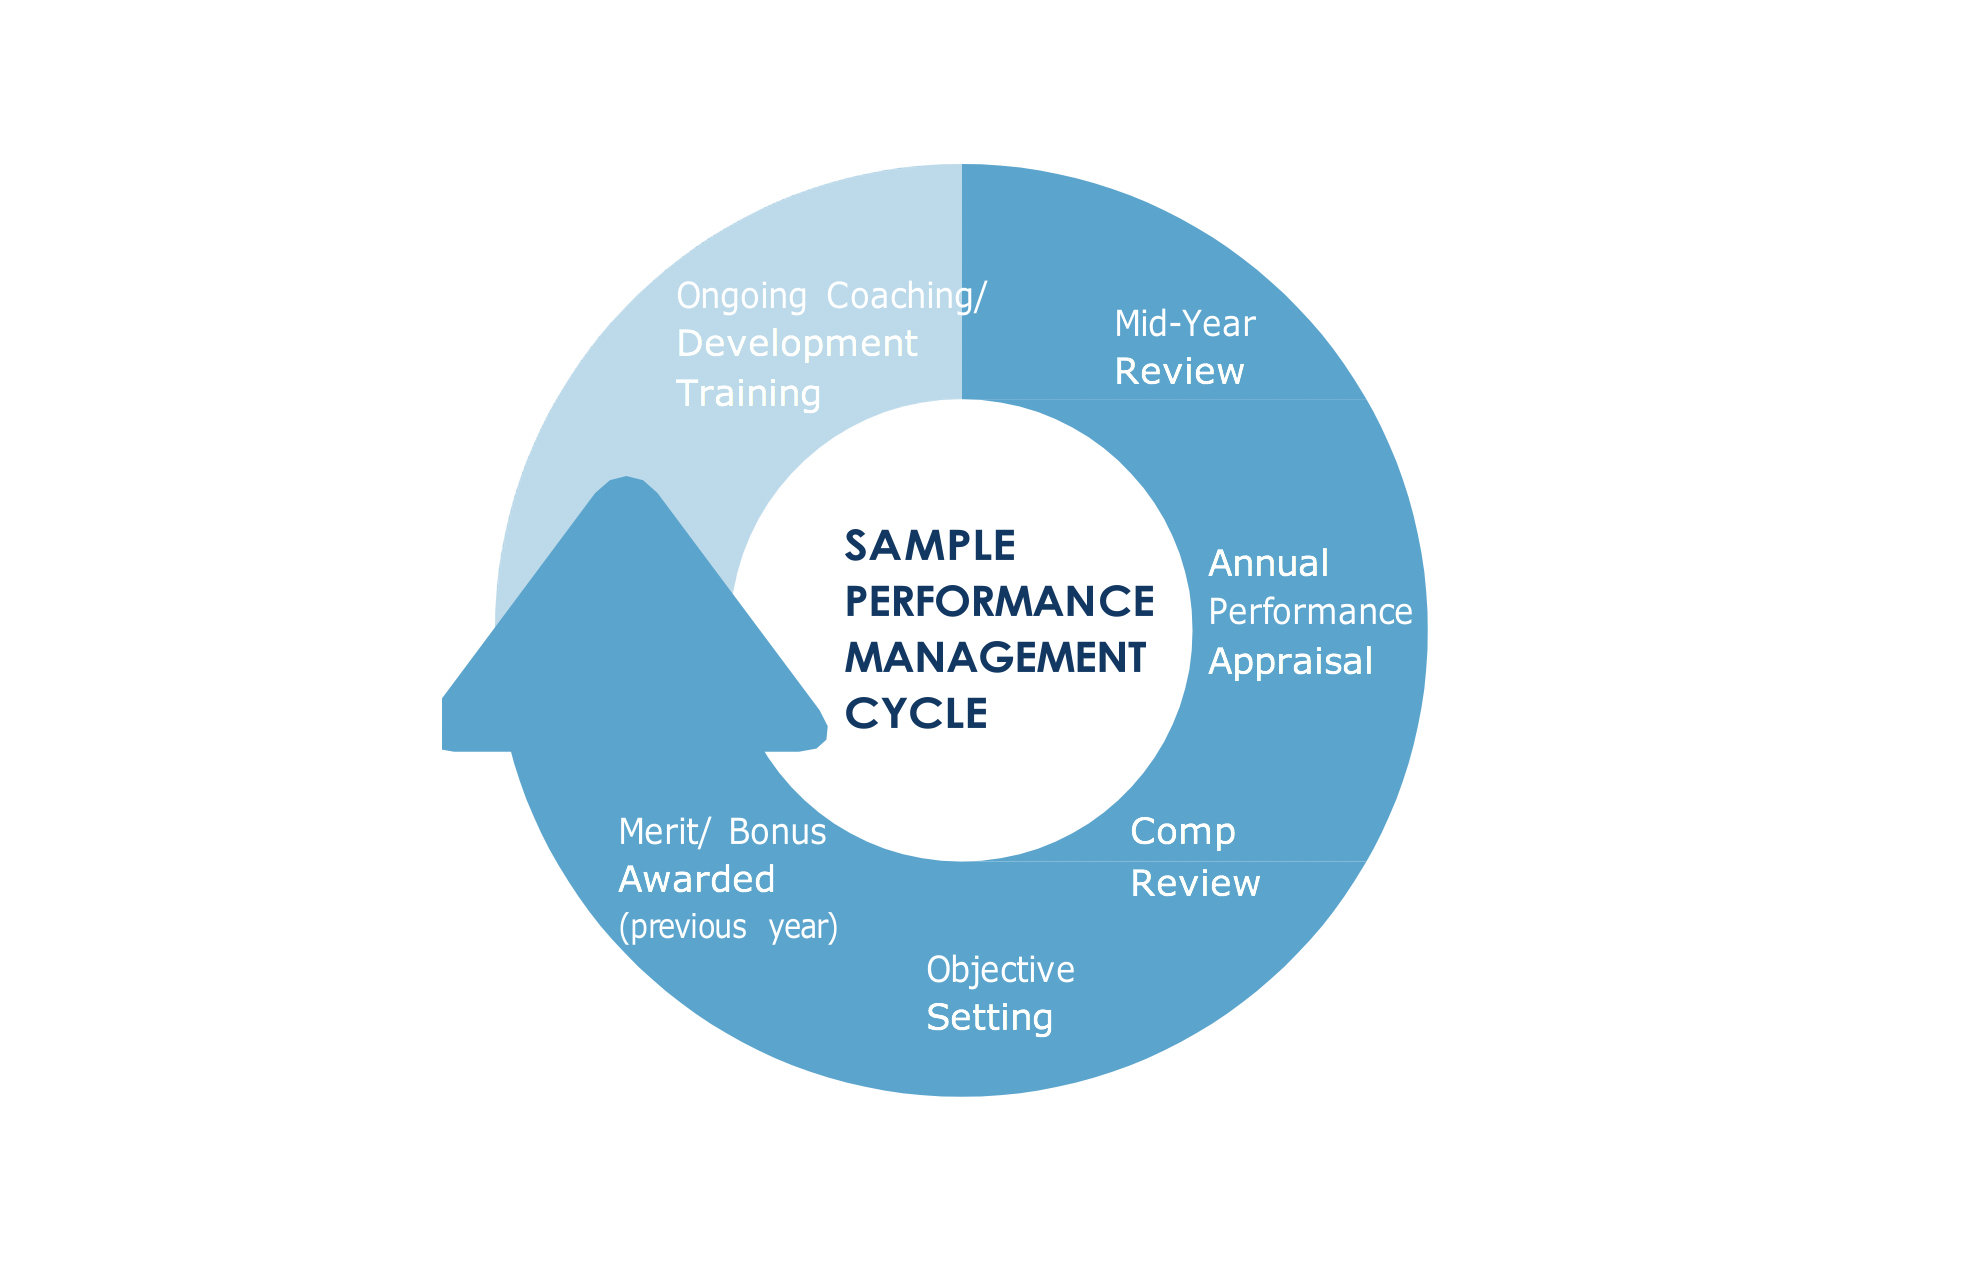 The Most Effective Employee Performance Management Cycle Recommended by Expert HR Advisors